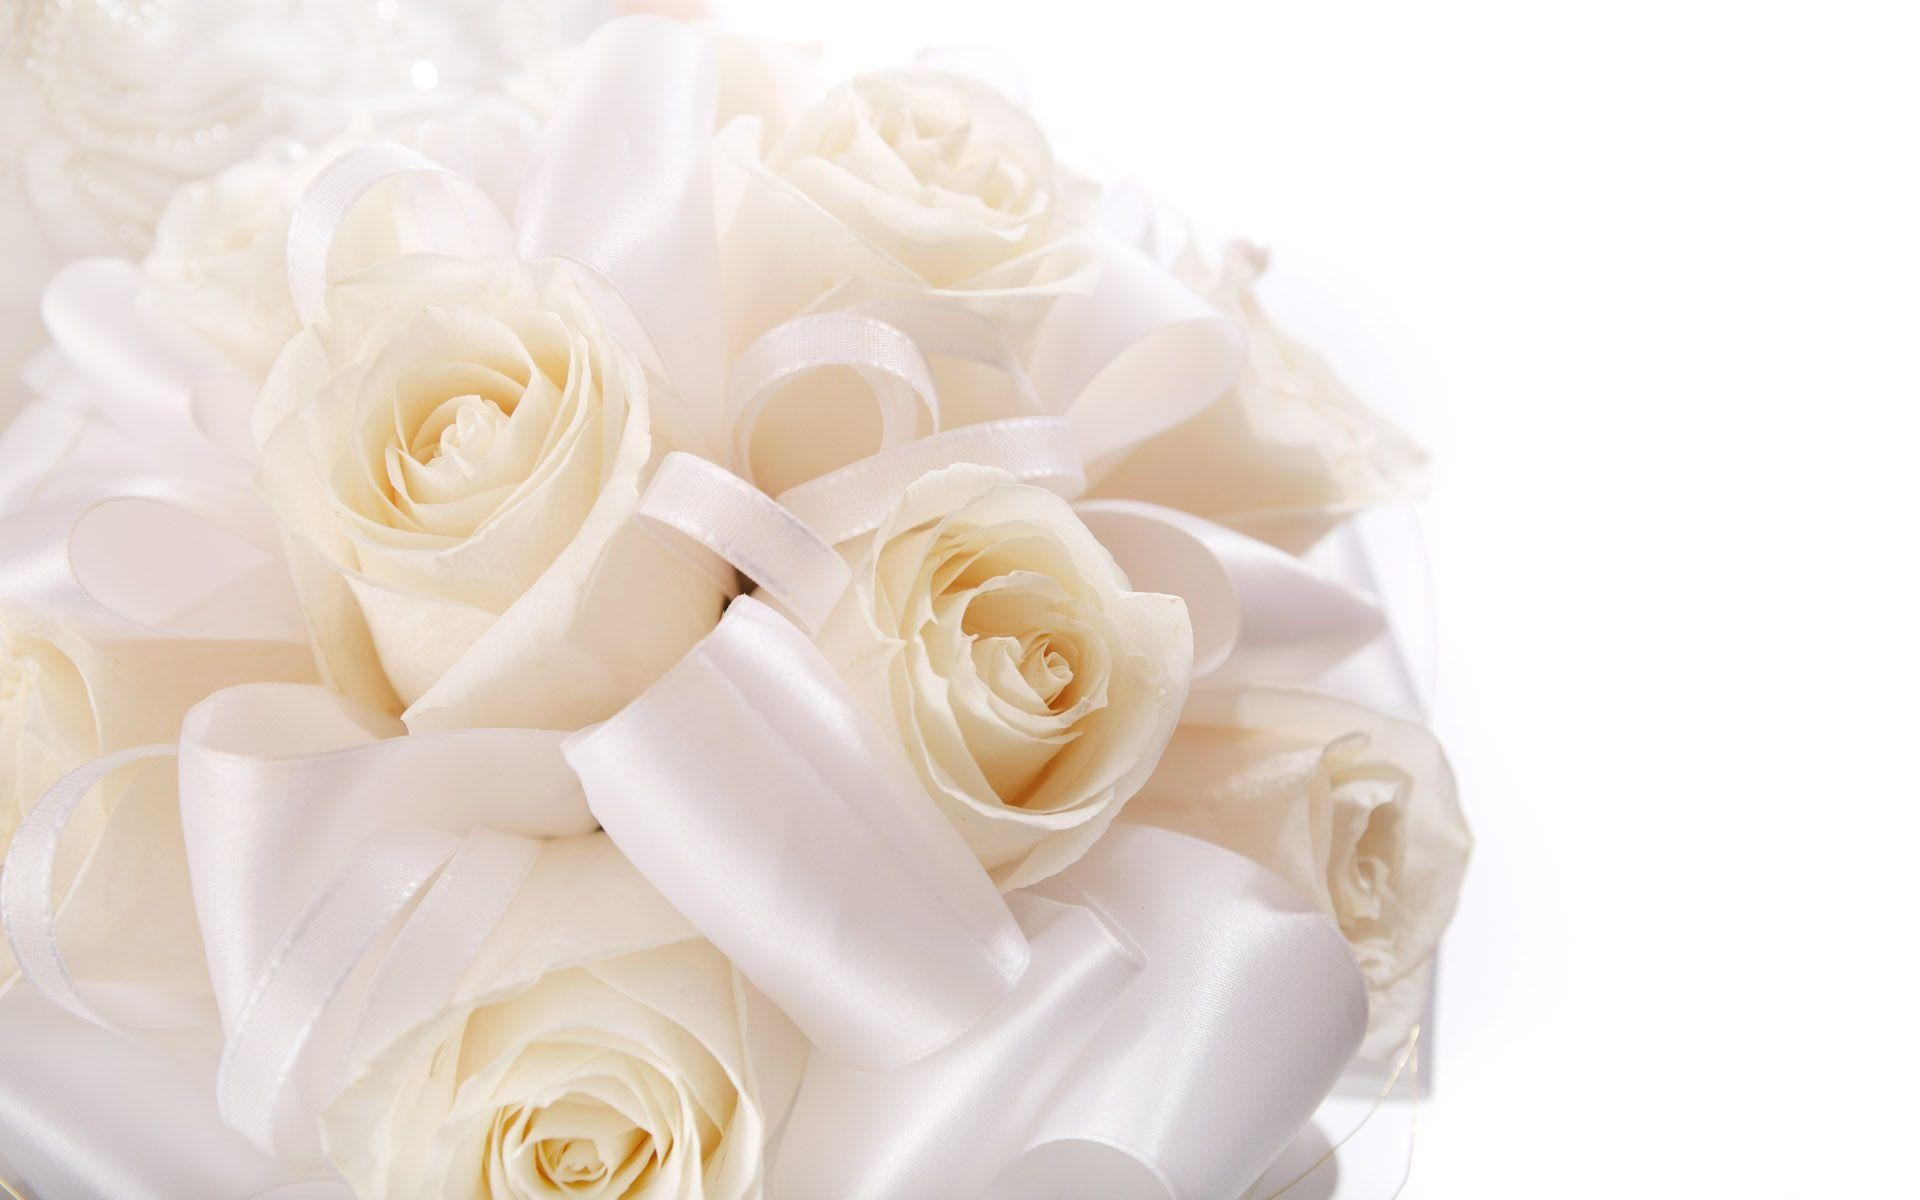 Res: 1920x1200, Most Downloaded Wedding Flowers Wallpapers - Full HD wallpaper search